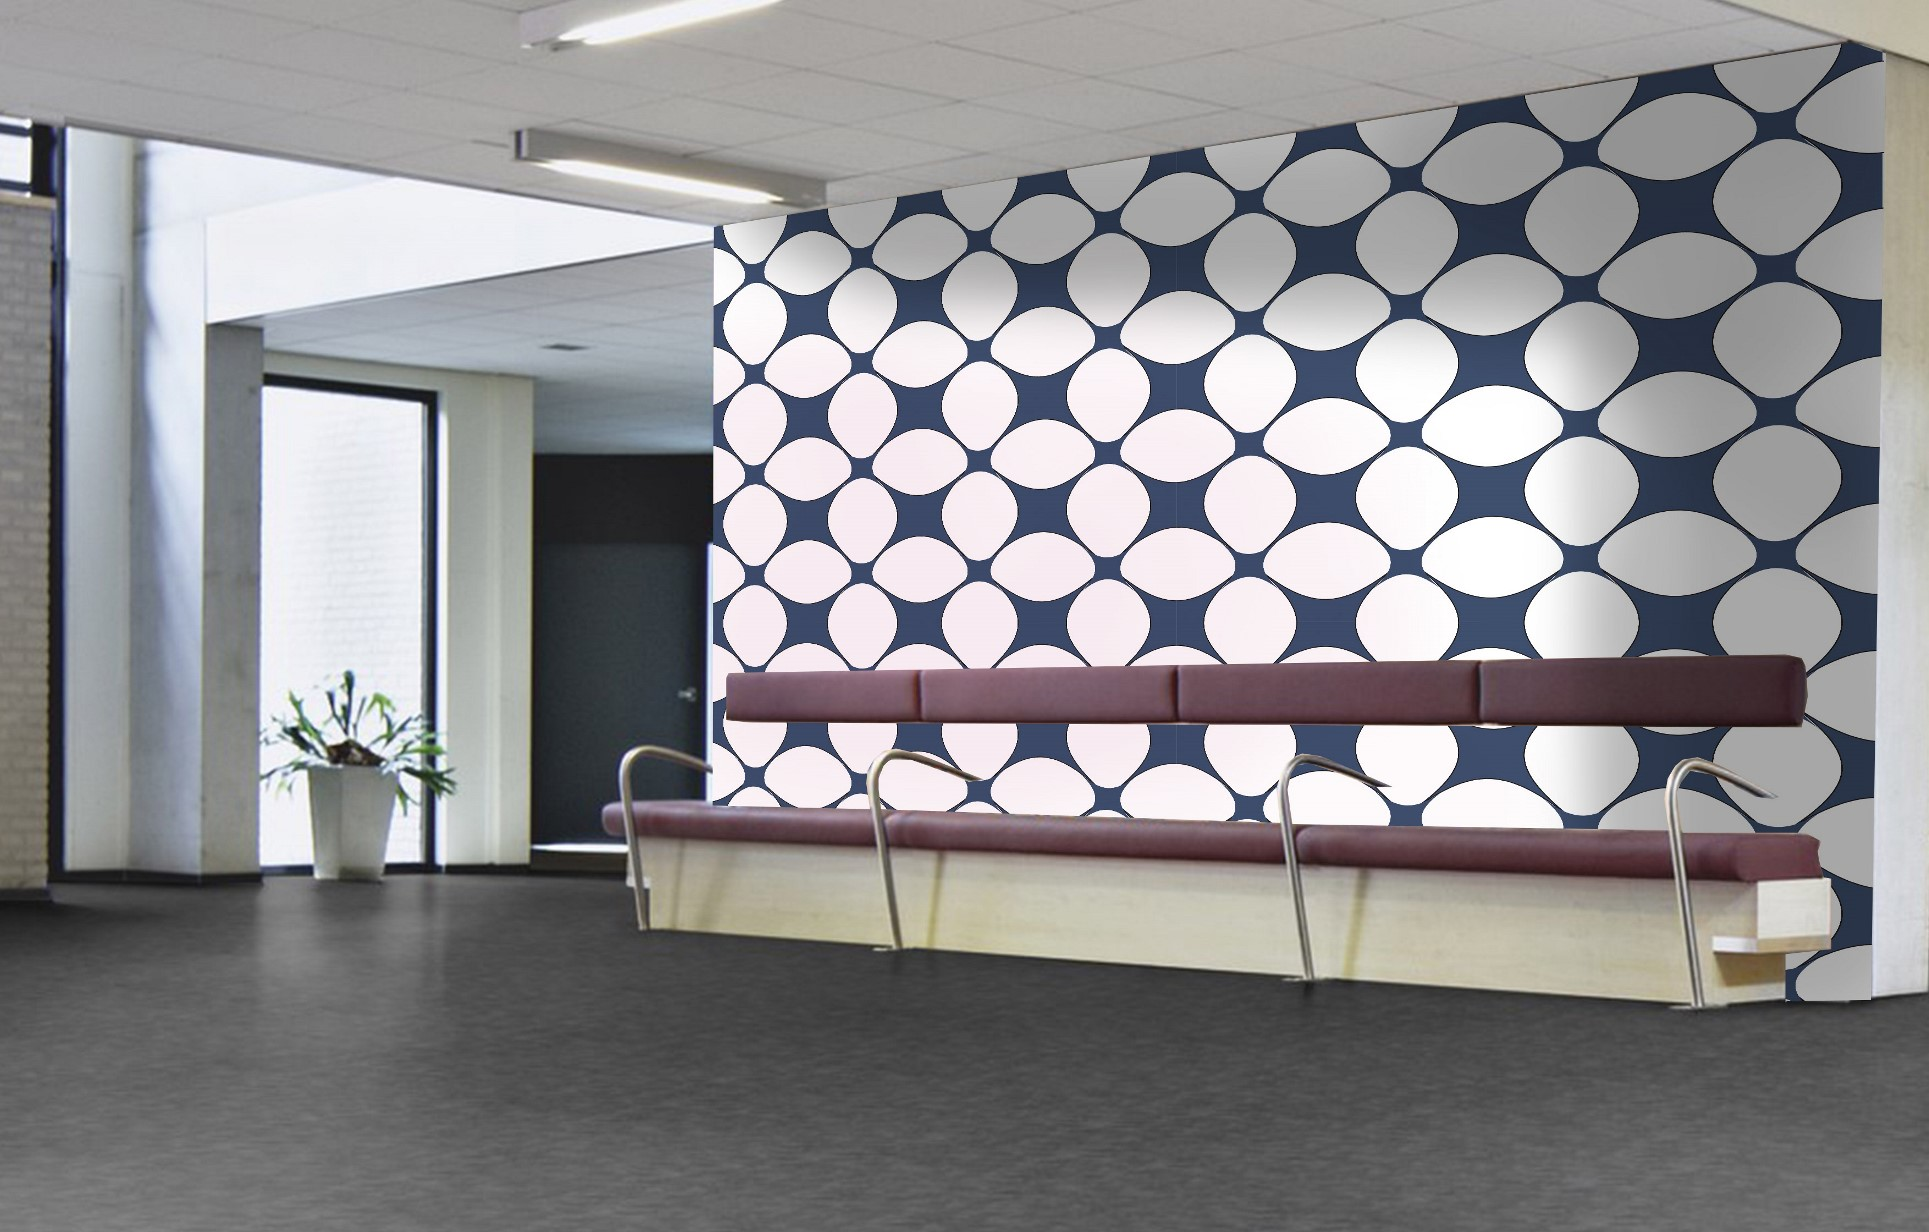 Mosaic collection wallcoverings by INTUITIVE DESIGN